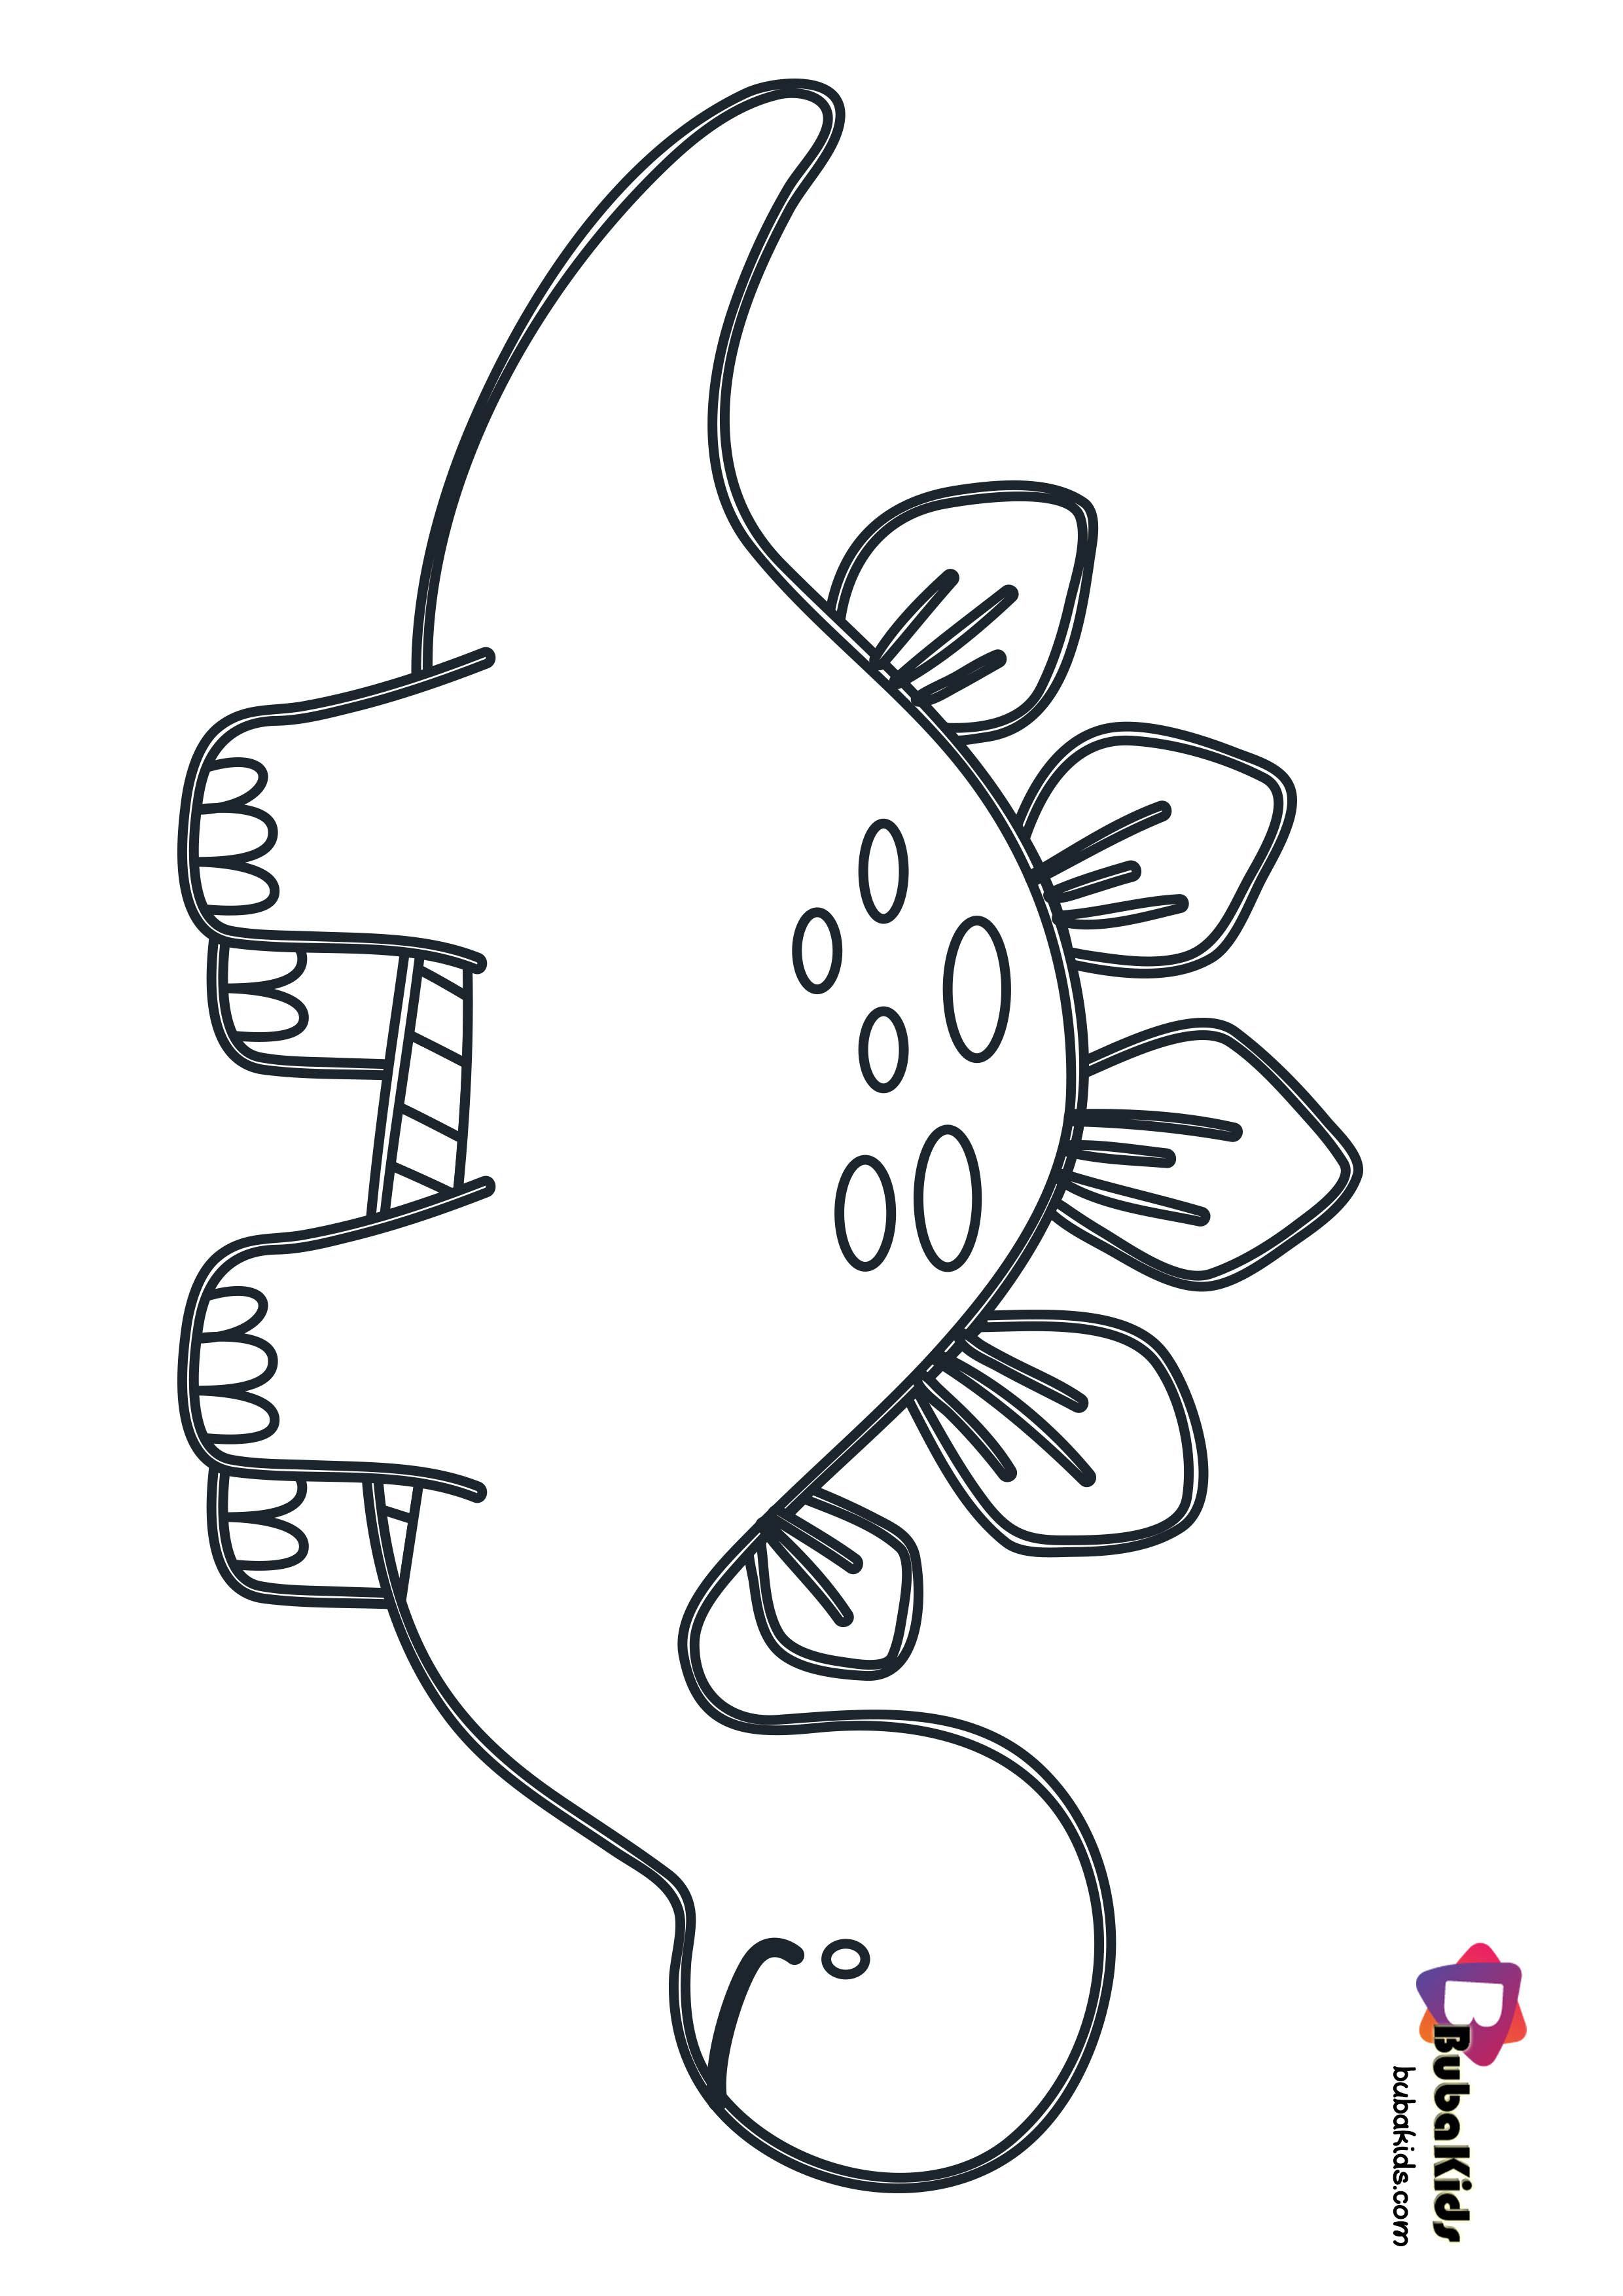 Download And Print Cute Baby T Rex Dinosaur Coloring Pages Dinosaur Coloring Pages Animal Coloring Pages Cartoon Coloring Pages